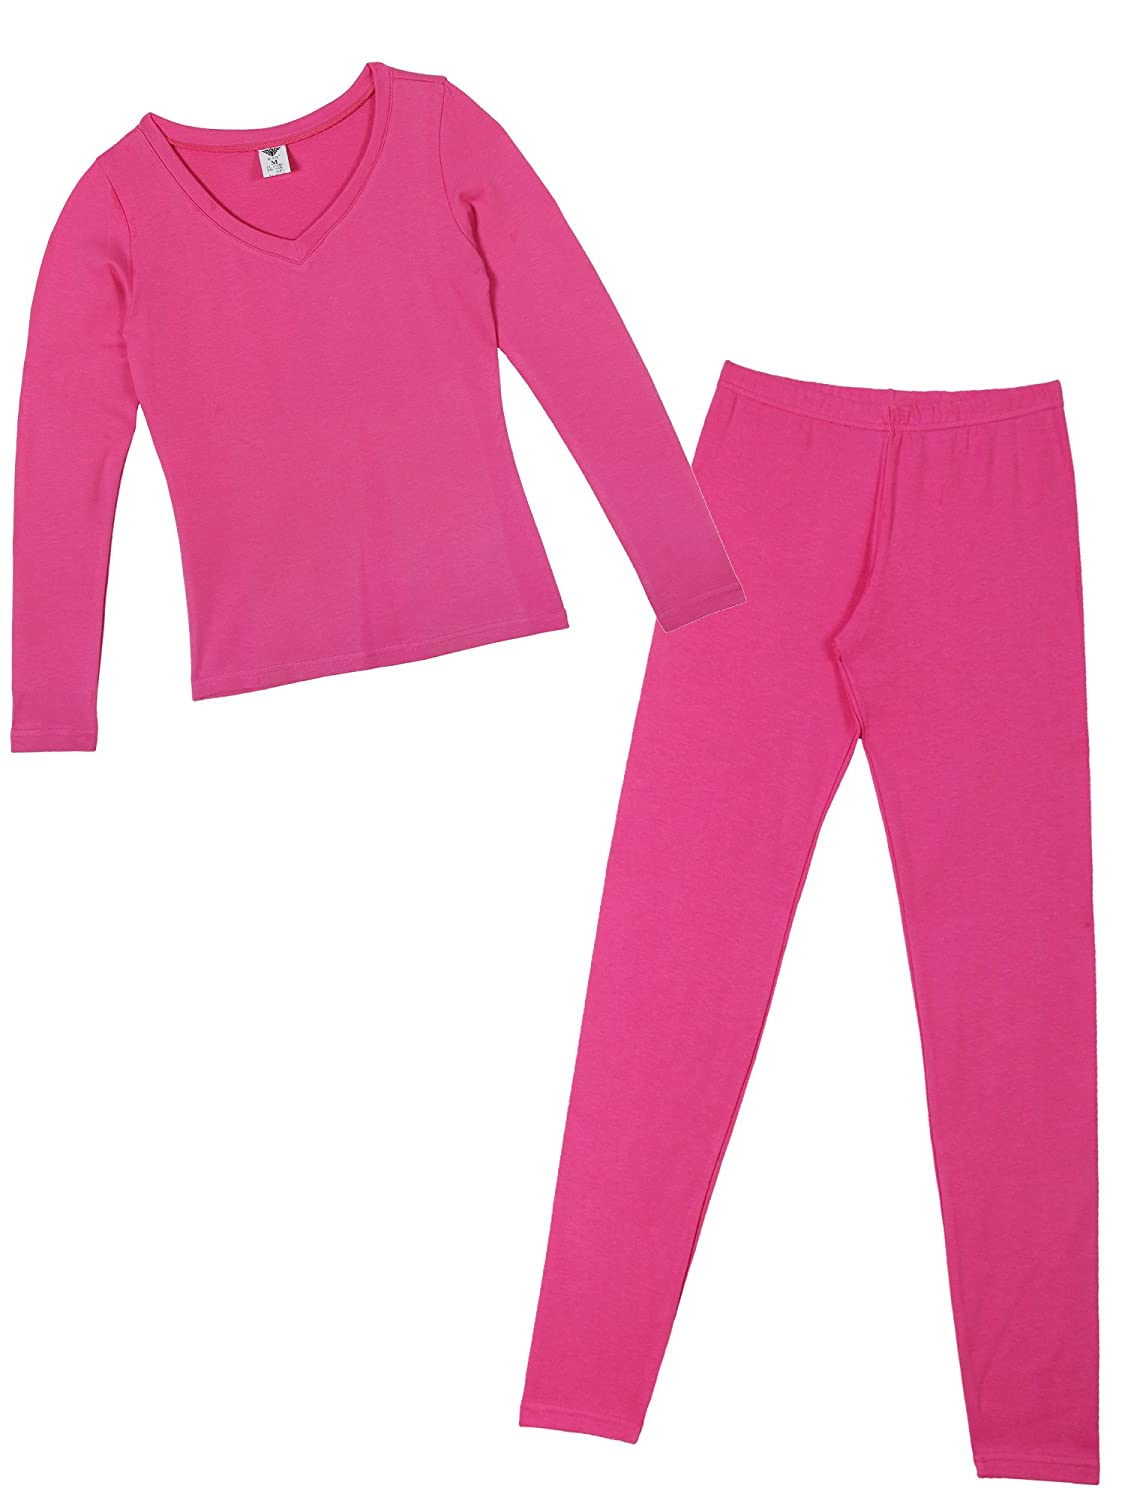 9600dc2a3807 Godsen Women s Long Johns Top   Bottom Thin Thermal Underwear Set FW1002